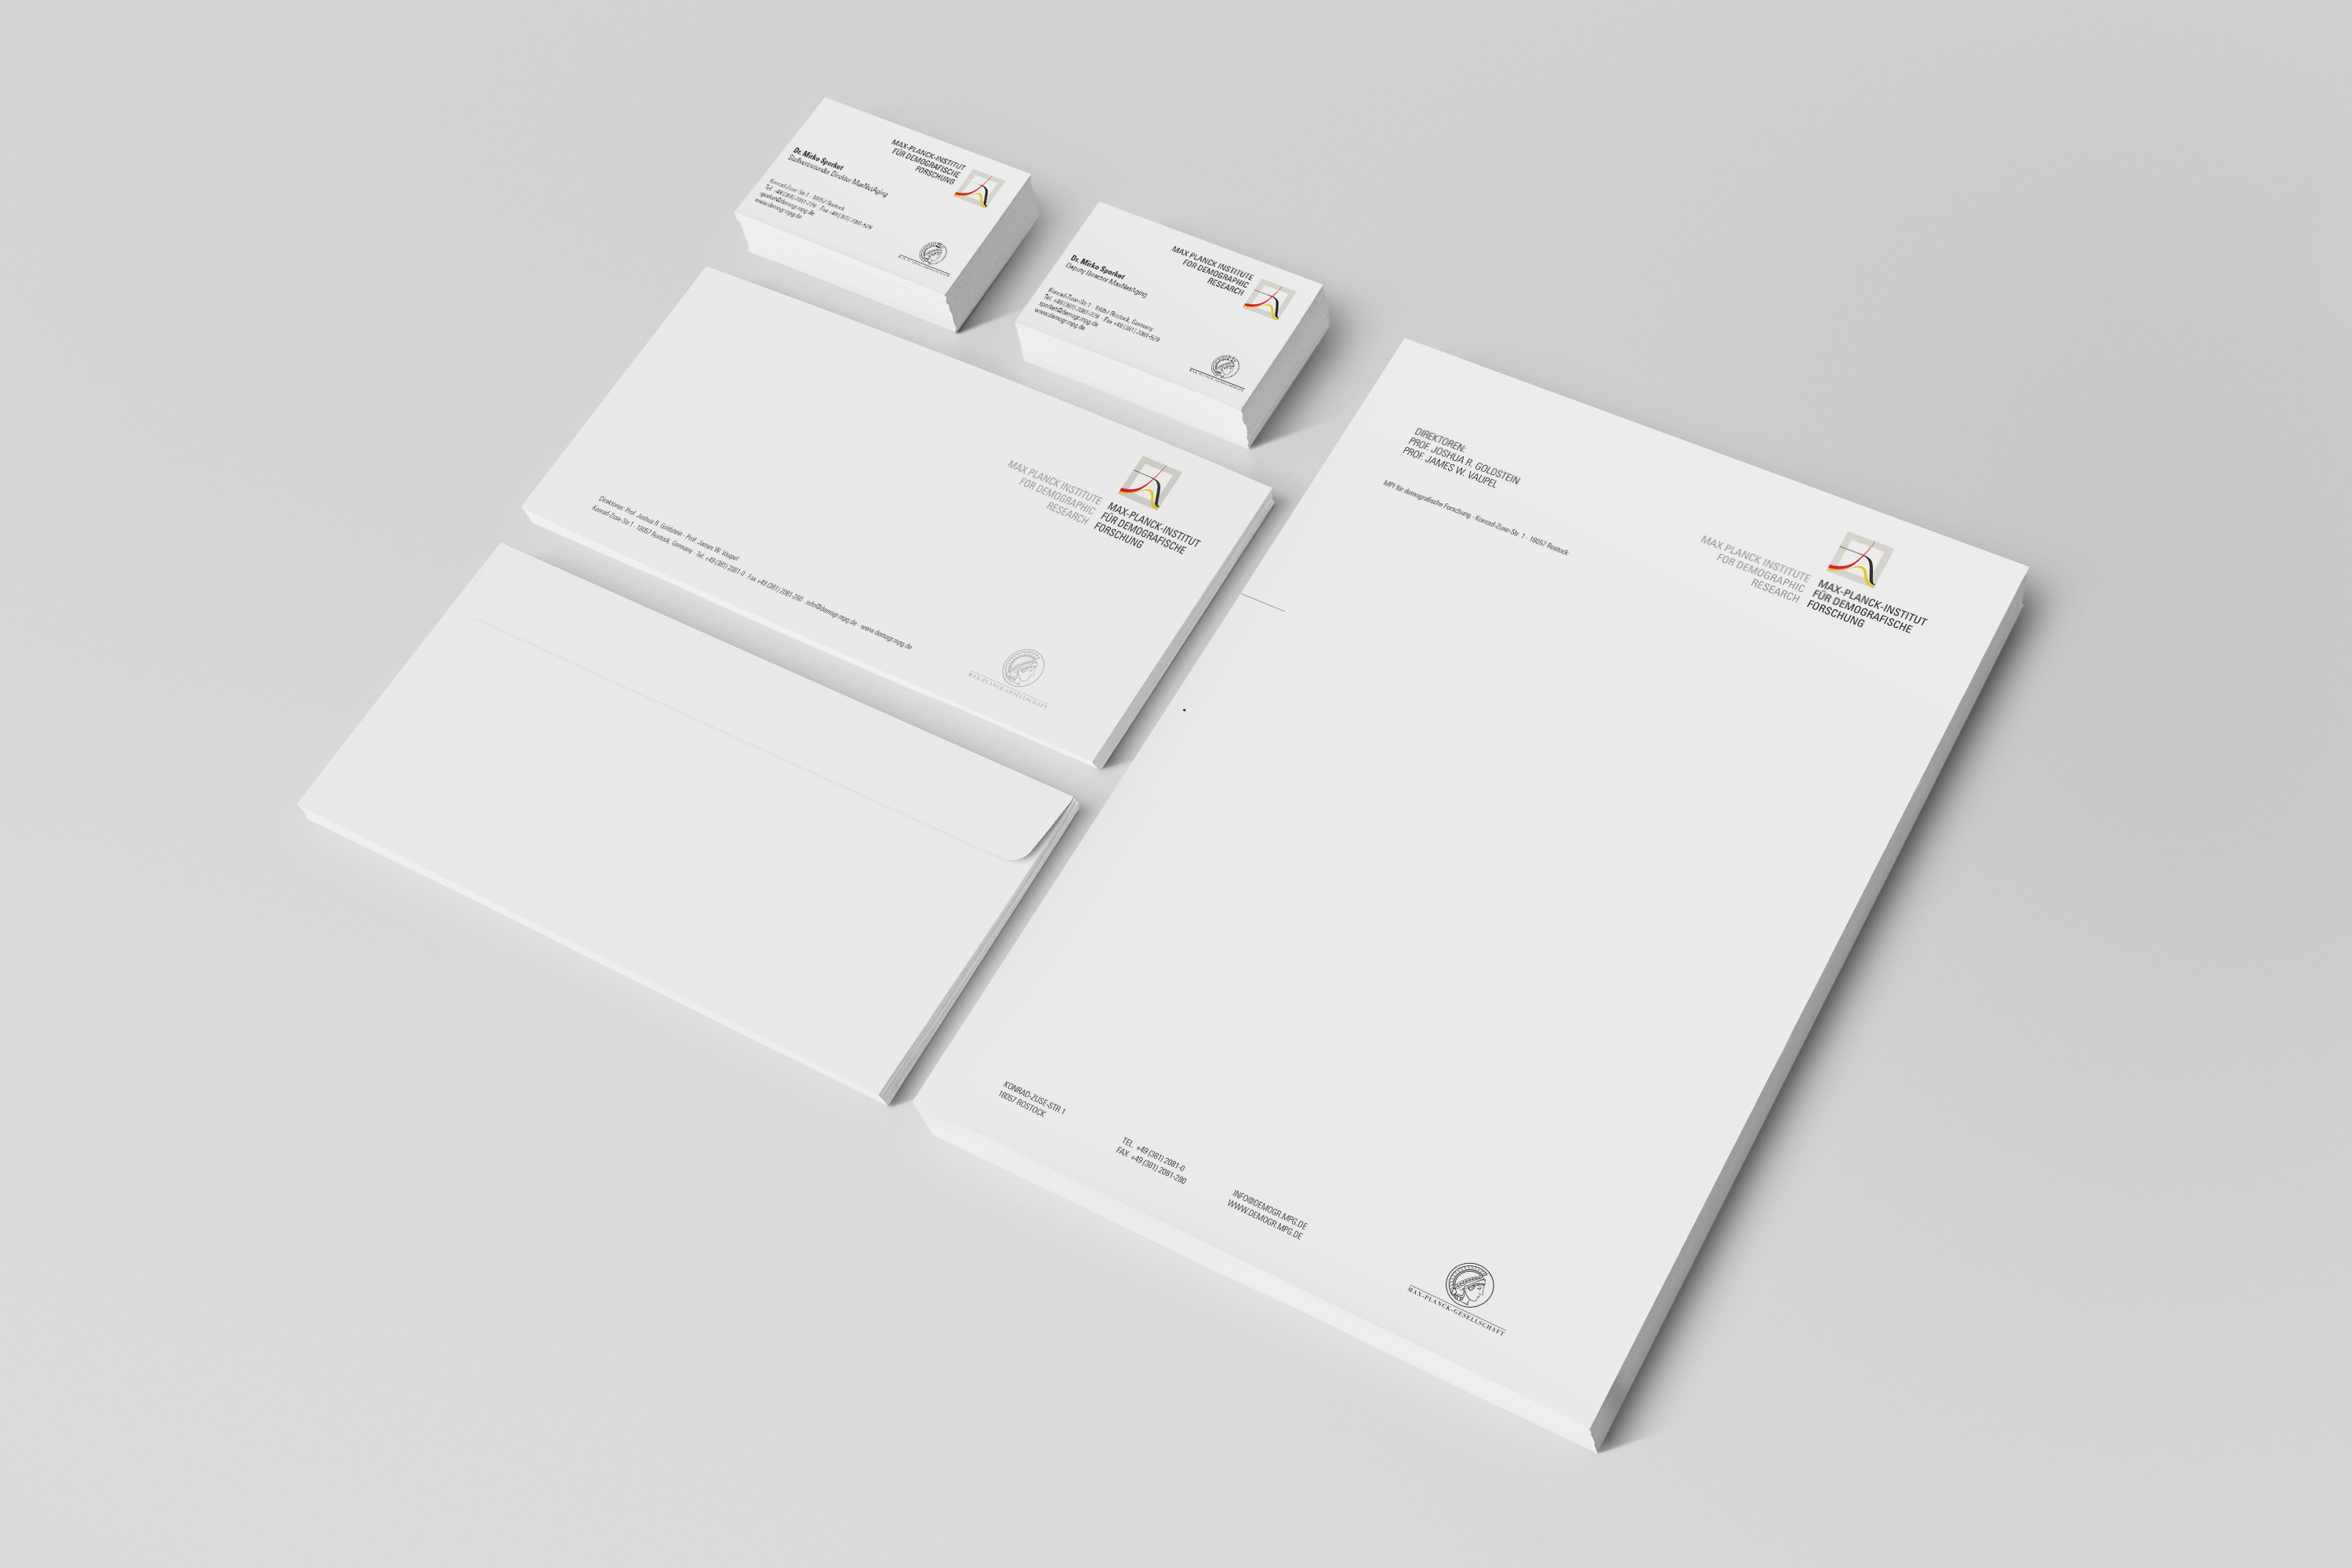 mpidr-buero-ink-stationery